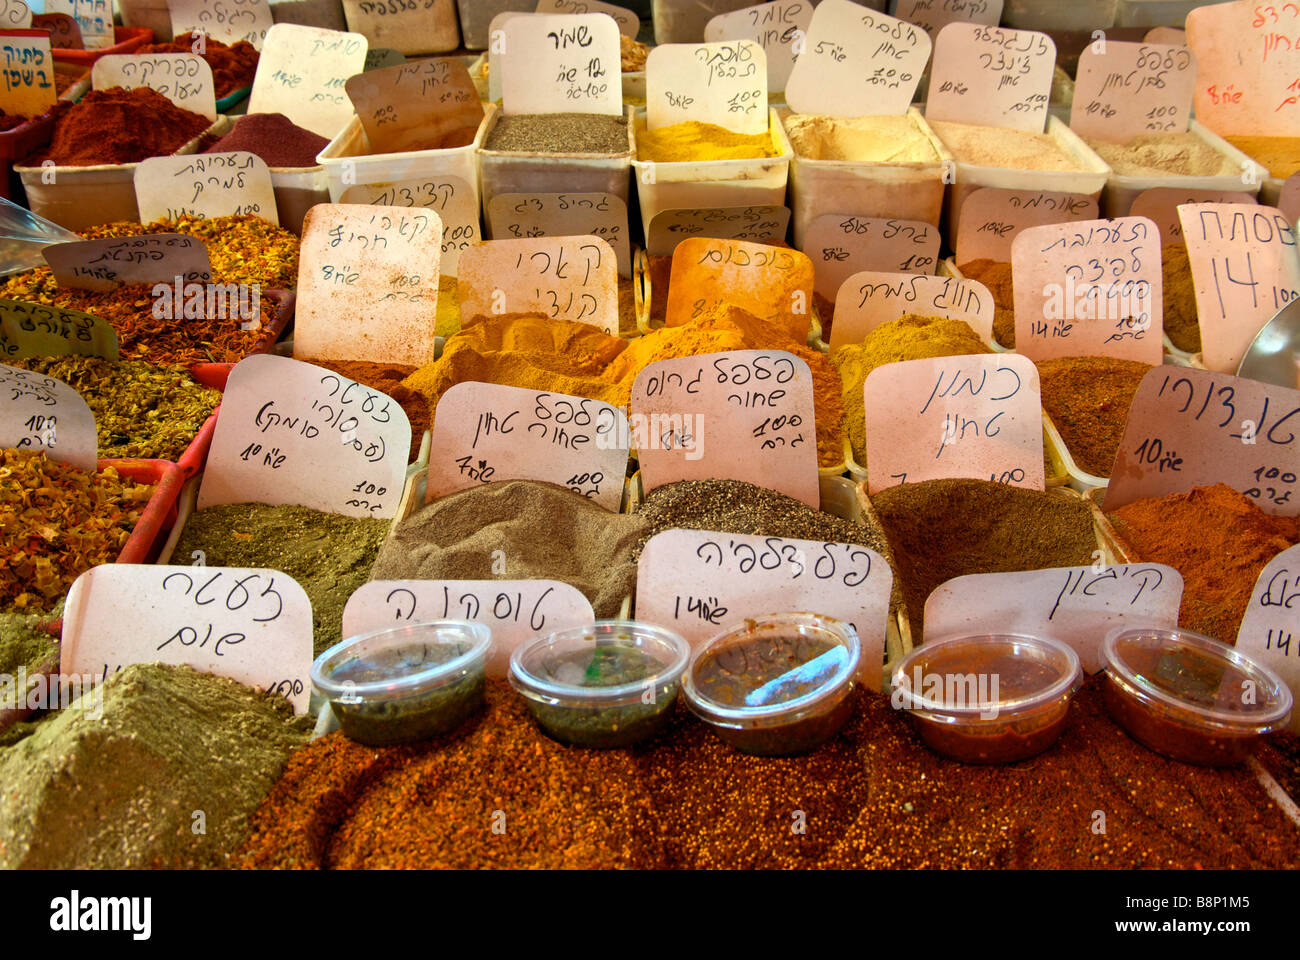 The Souk: A Middle Eastern Bazaar   ZOHAR PRODUCTIONS   Middle East Spice Market